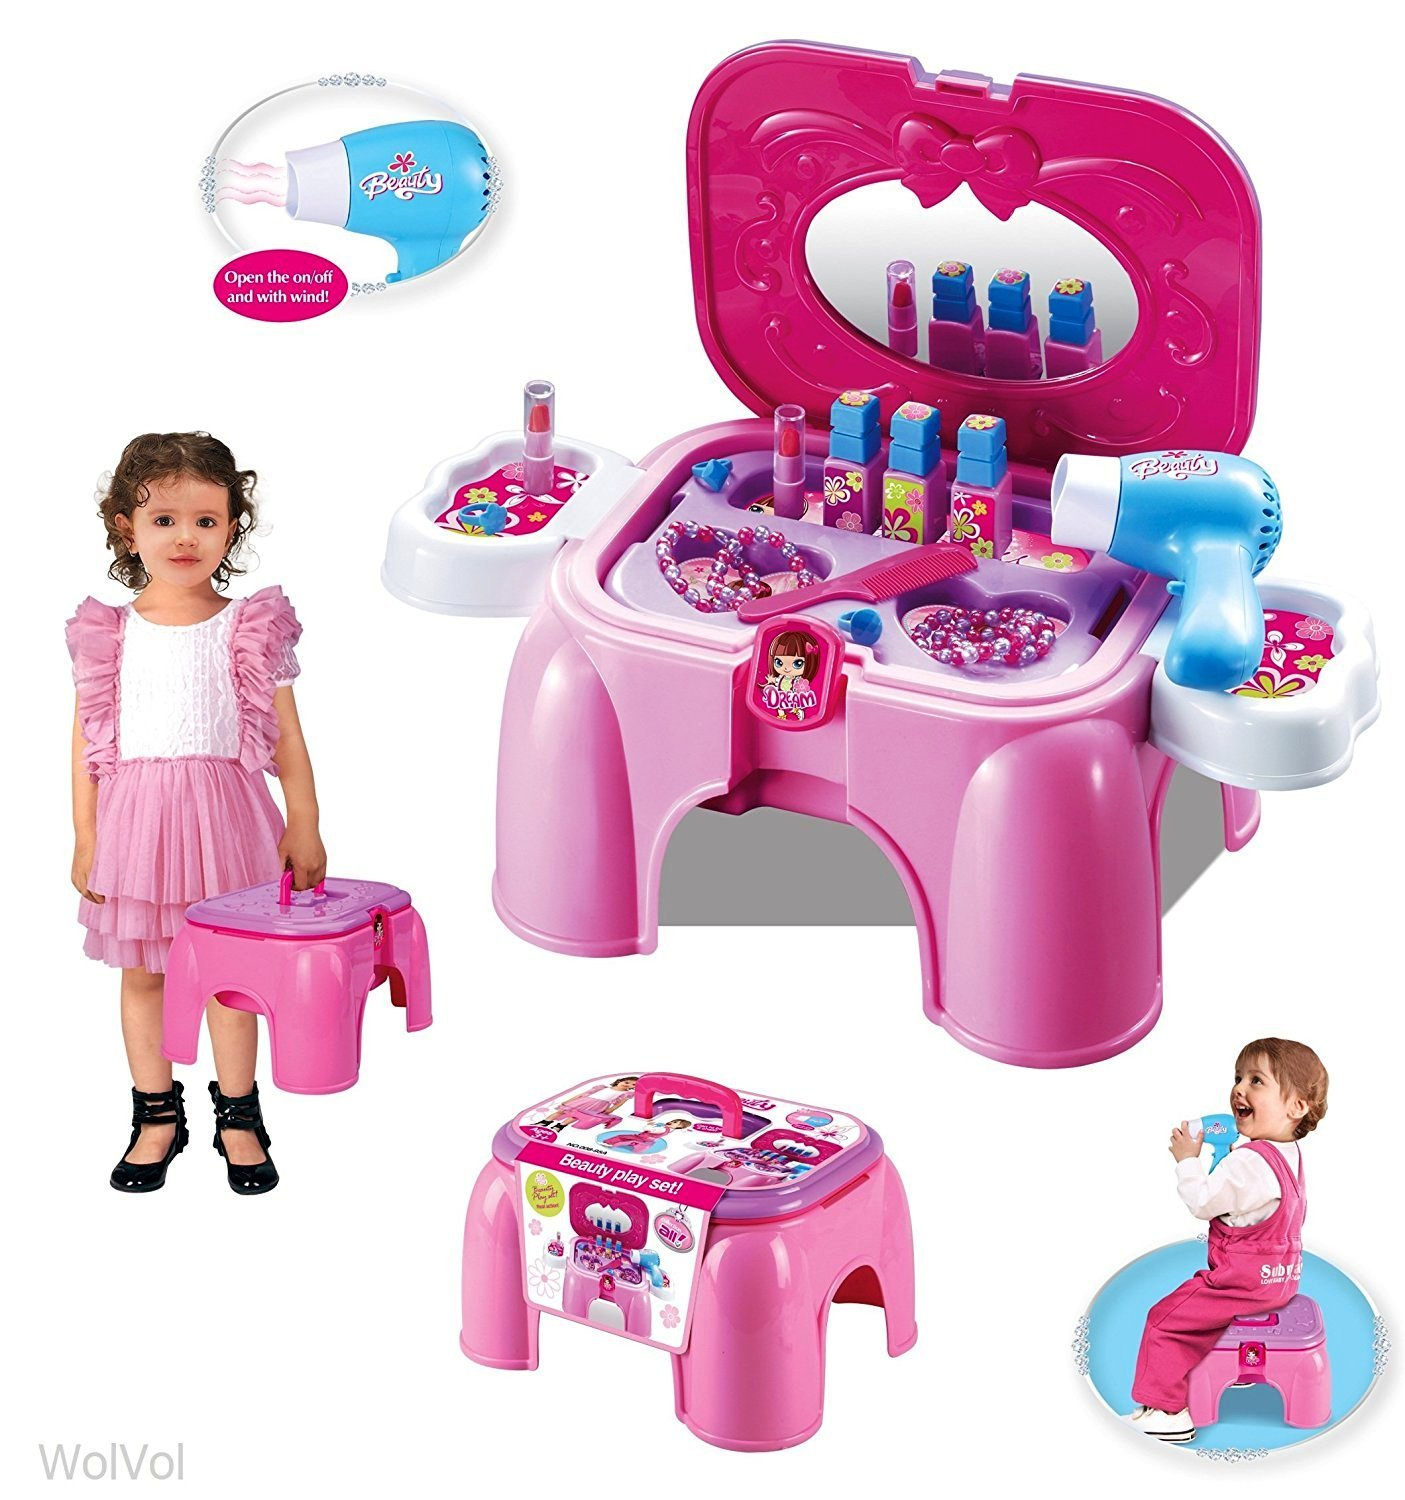 WolVol Electric Take Along Kids Salon Vanity Playset Activities with Mirror and Working Hair Dryer, Folds into Step Stool (Pink)